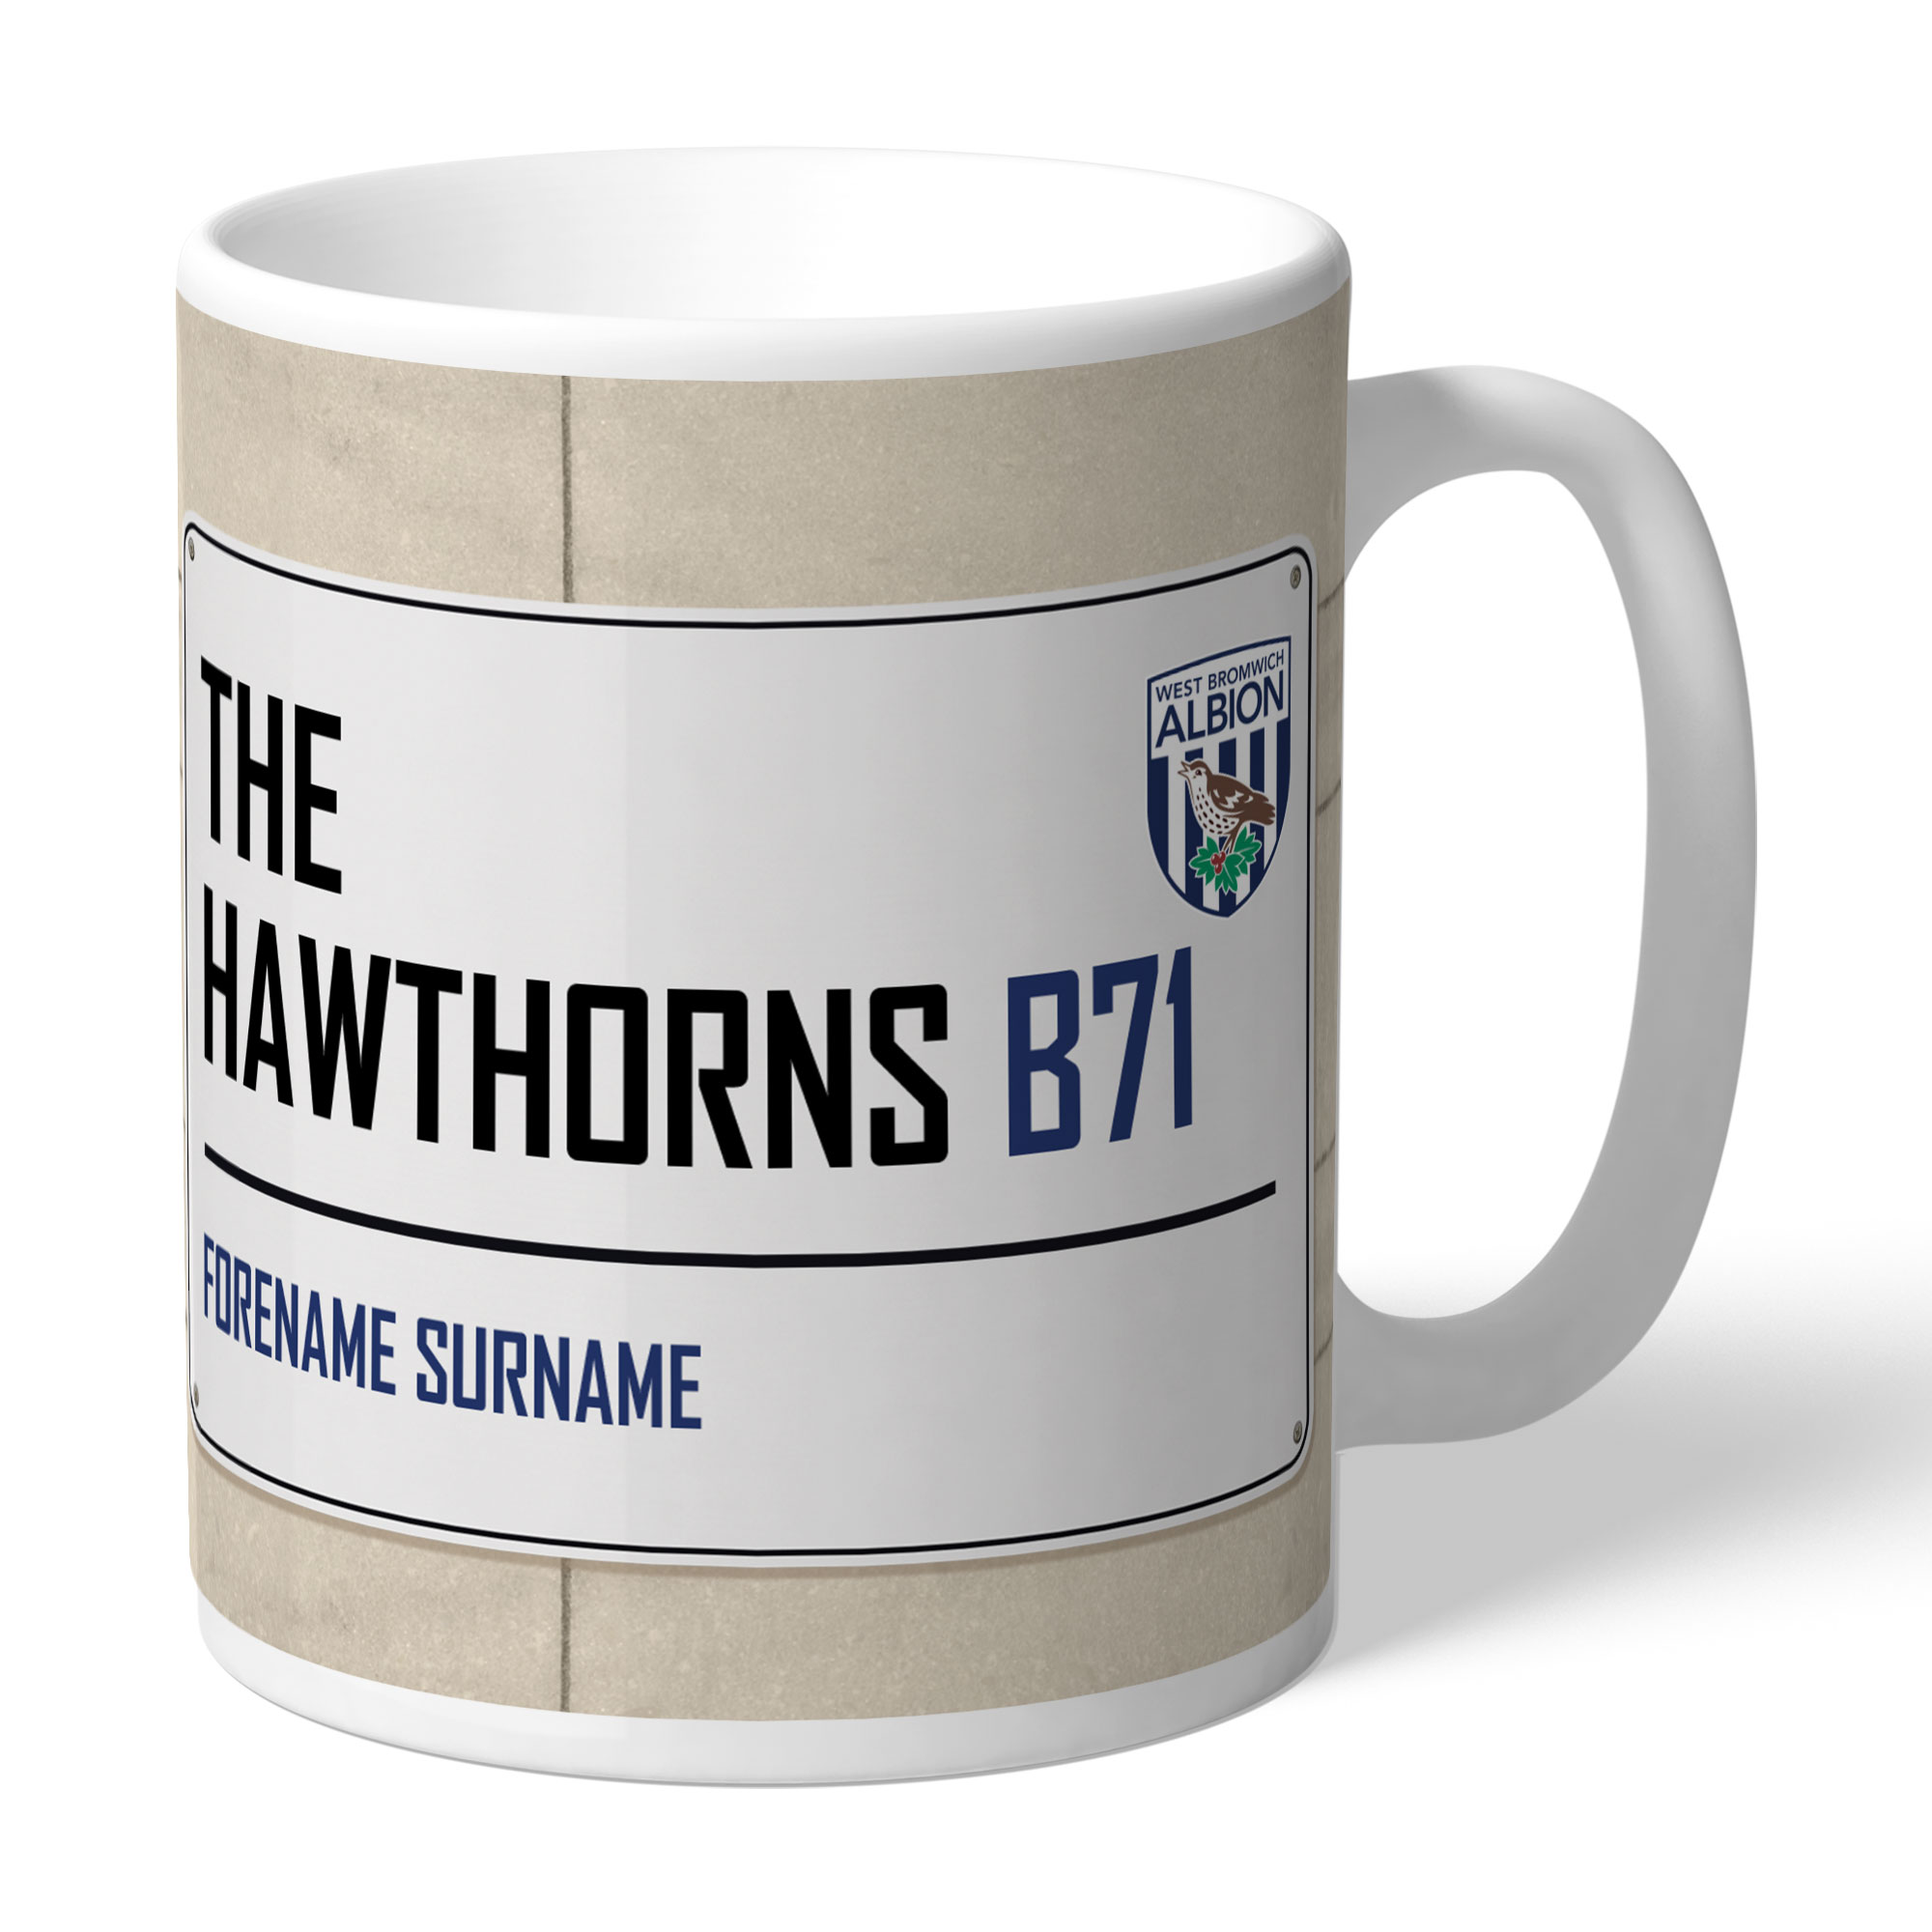 West Bromwich Albion FC Street Sign Mug